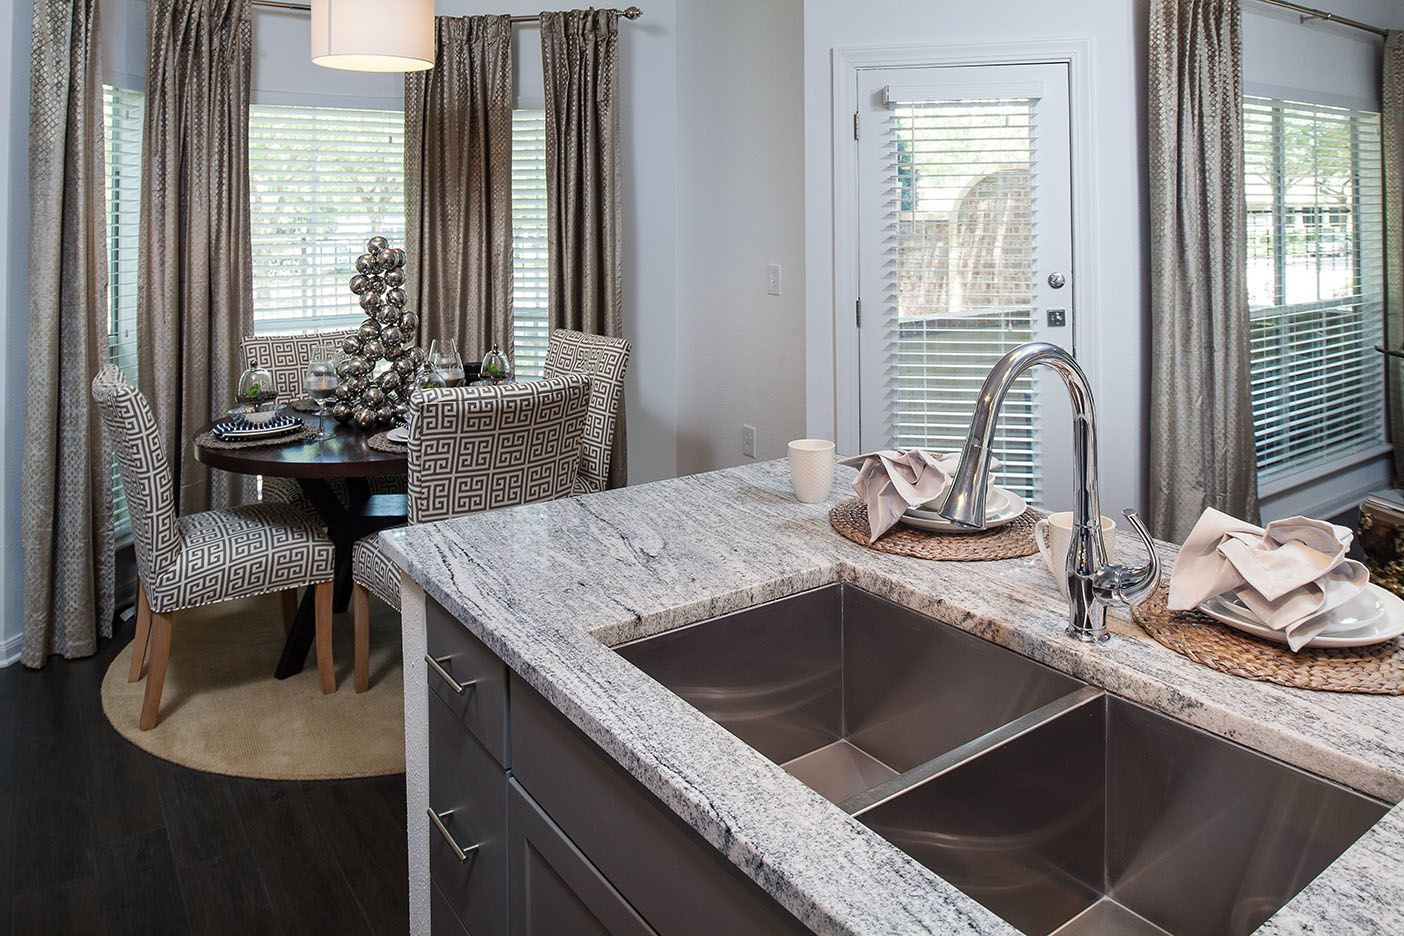 Town Center by Cortland rental